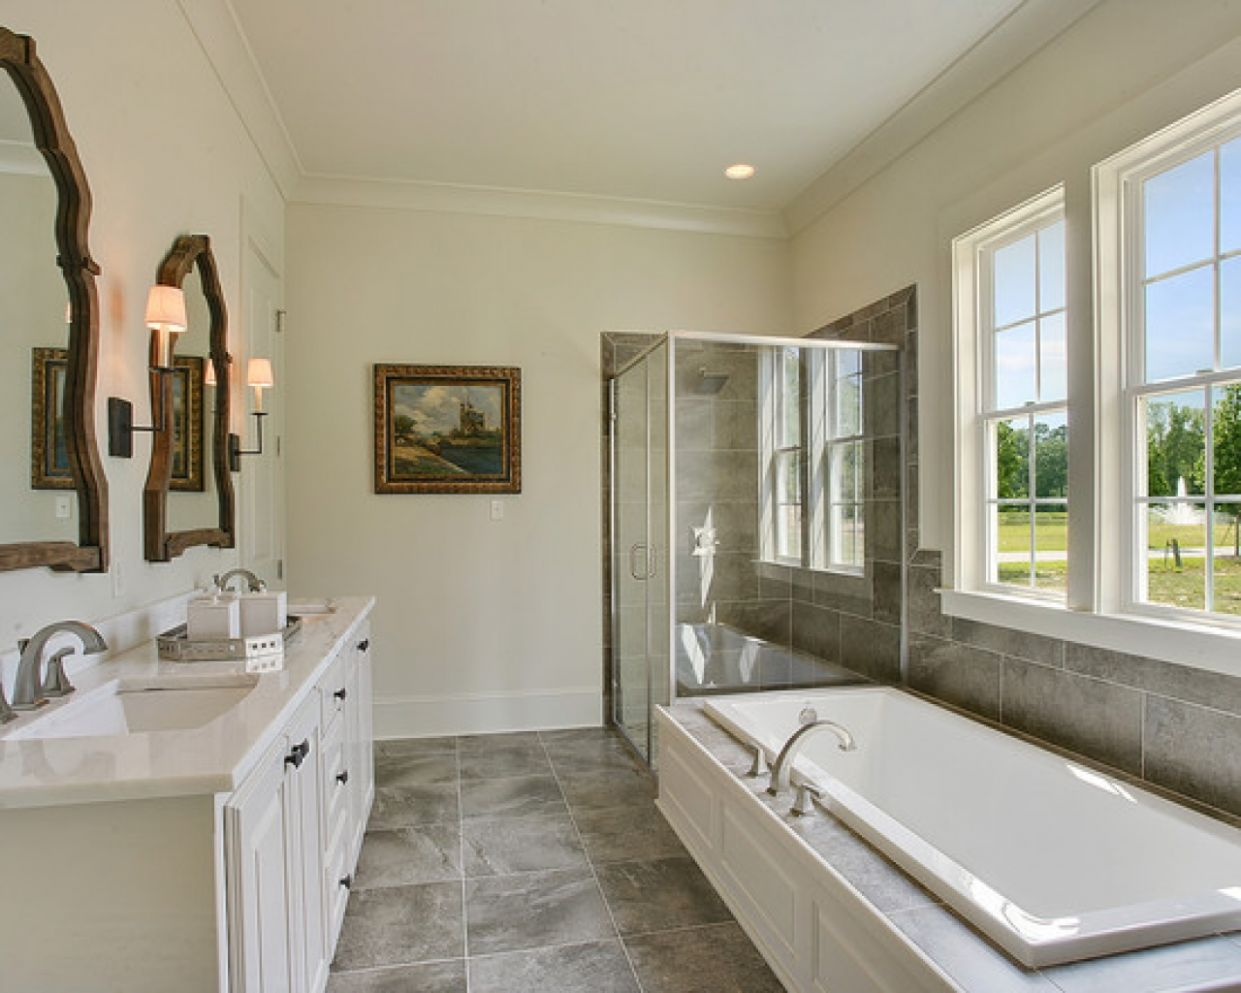 New Home Bathroom Ideas Video And Photos Landscaping Ranch ..